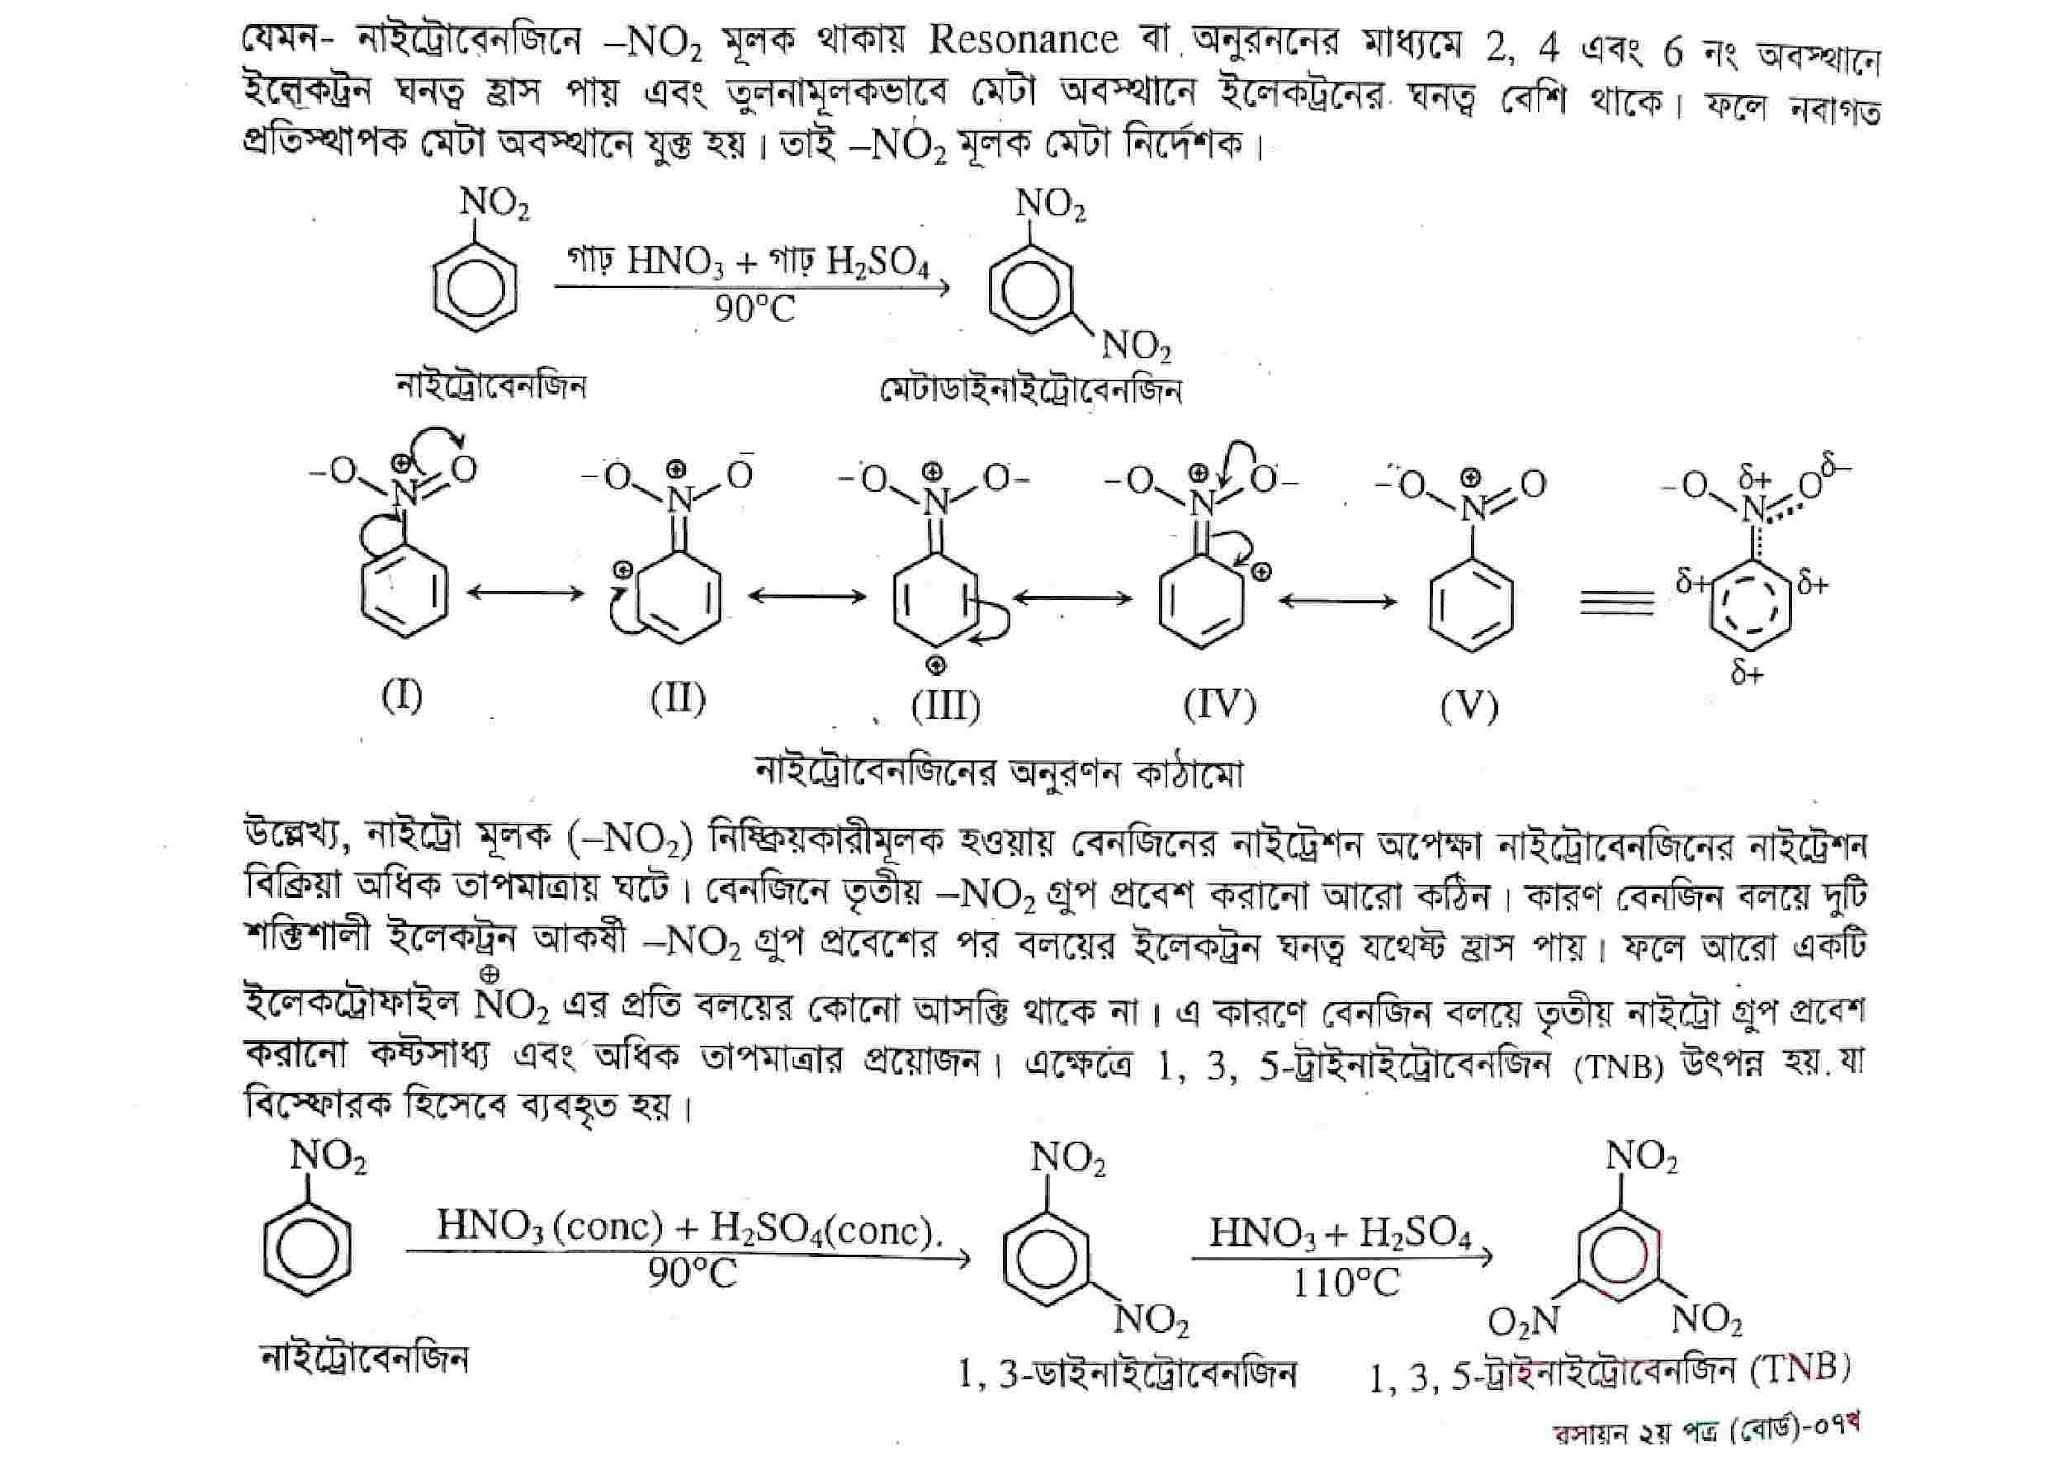 HSC 5th Week Chemistry Assignment Answer 2021